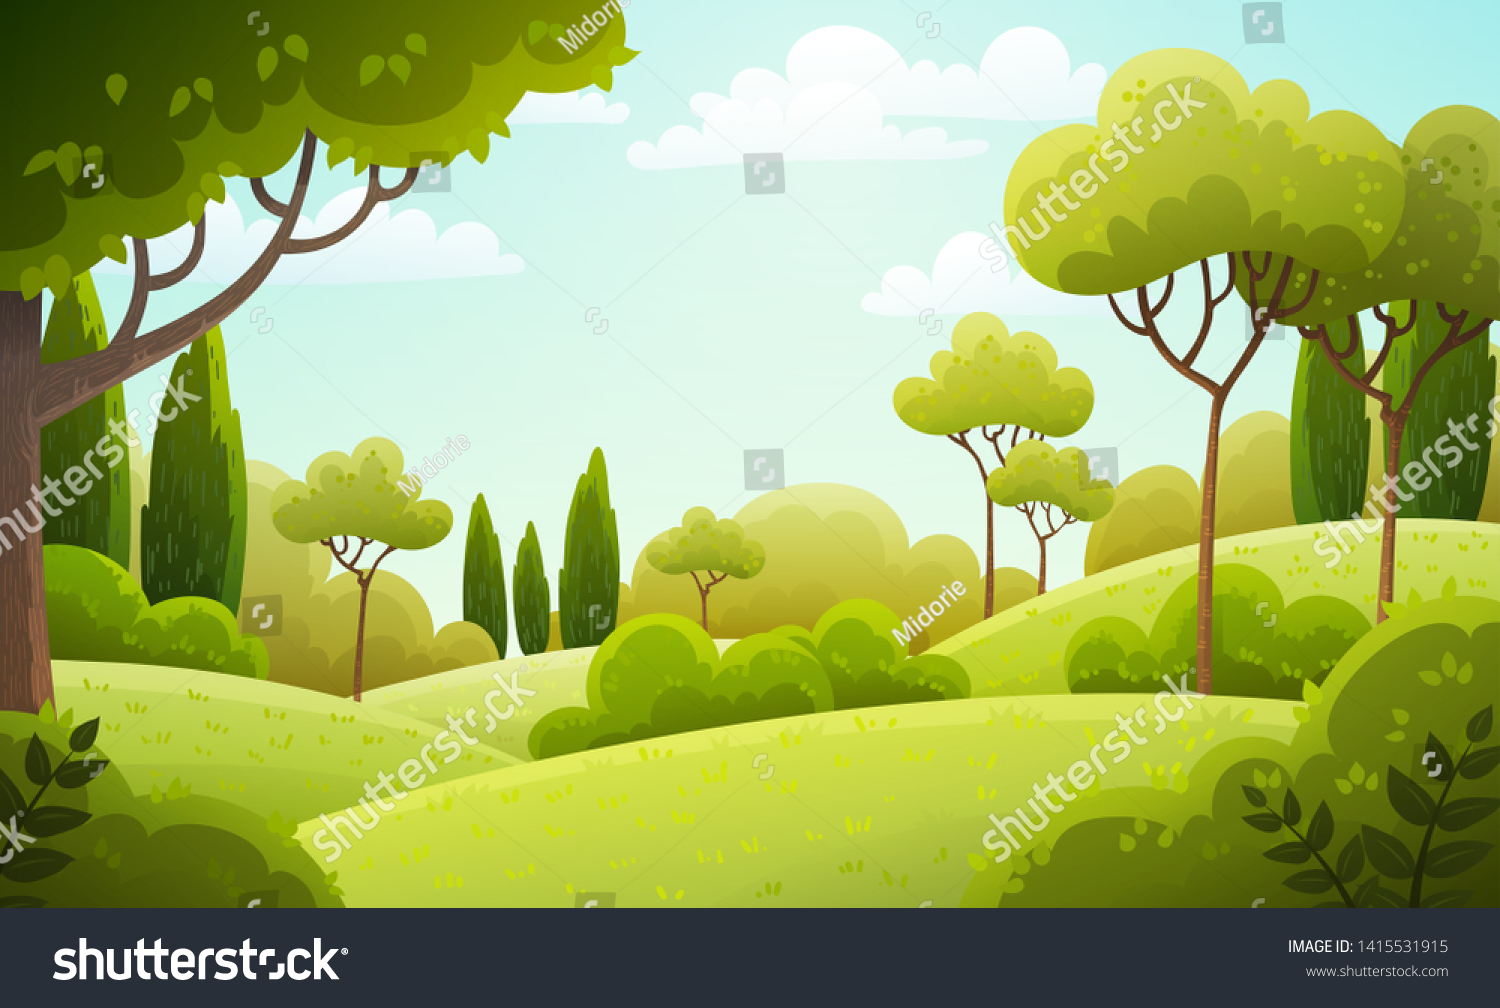 Vector illustration background of the Italian countryside. Hill landscape with pines and cypresses. Spring scenery with green grass and blue sky. #1415531915